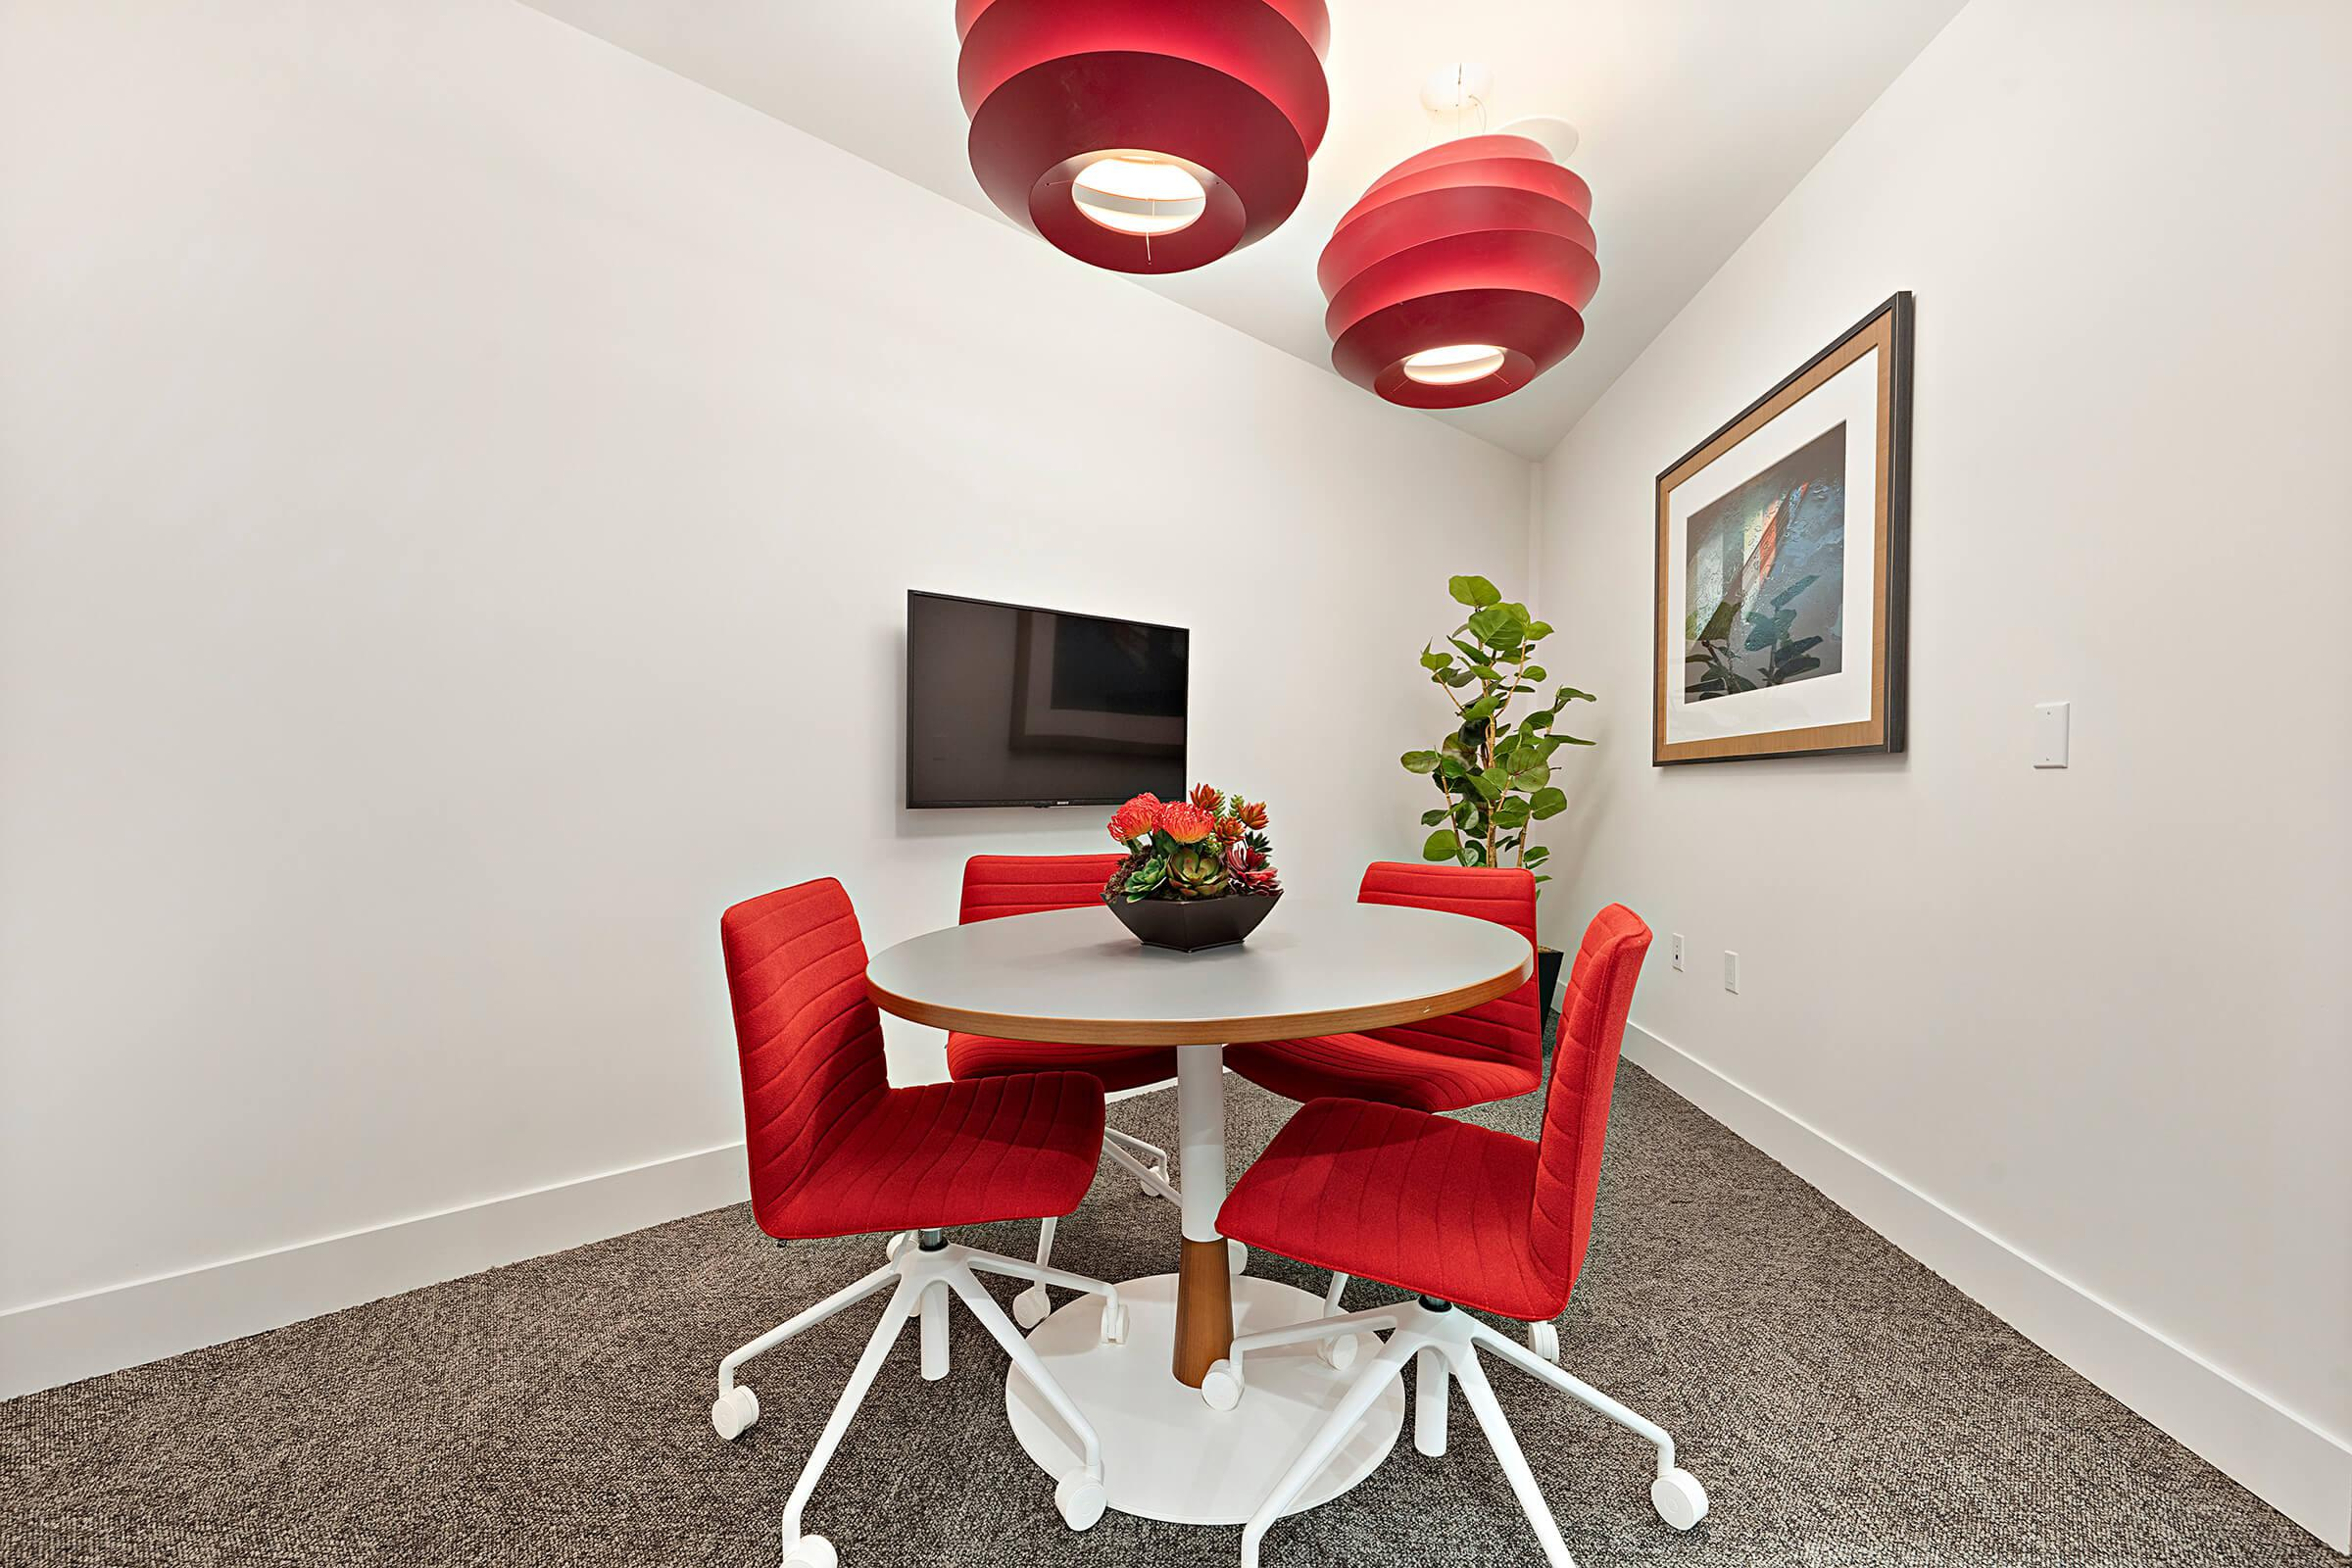 Calligraphy Urban Residences conference room with a table and chairs